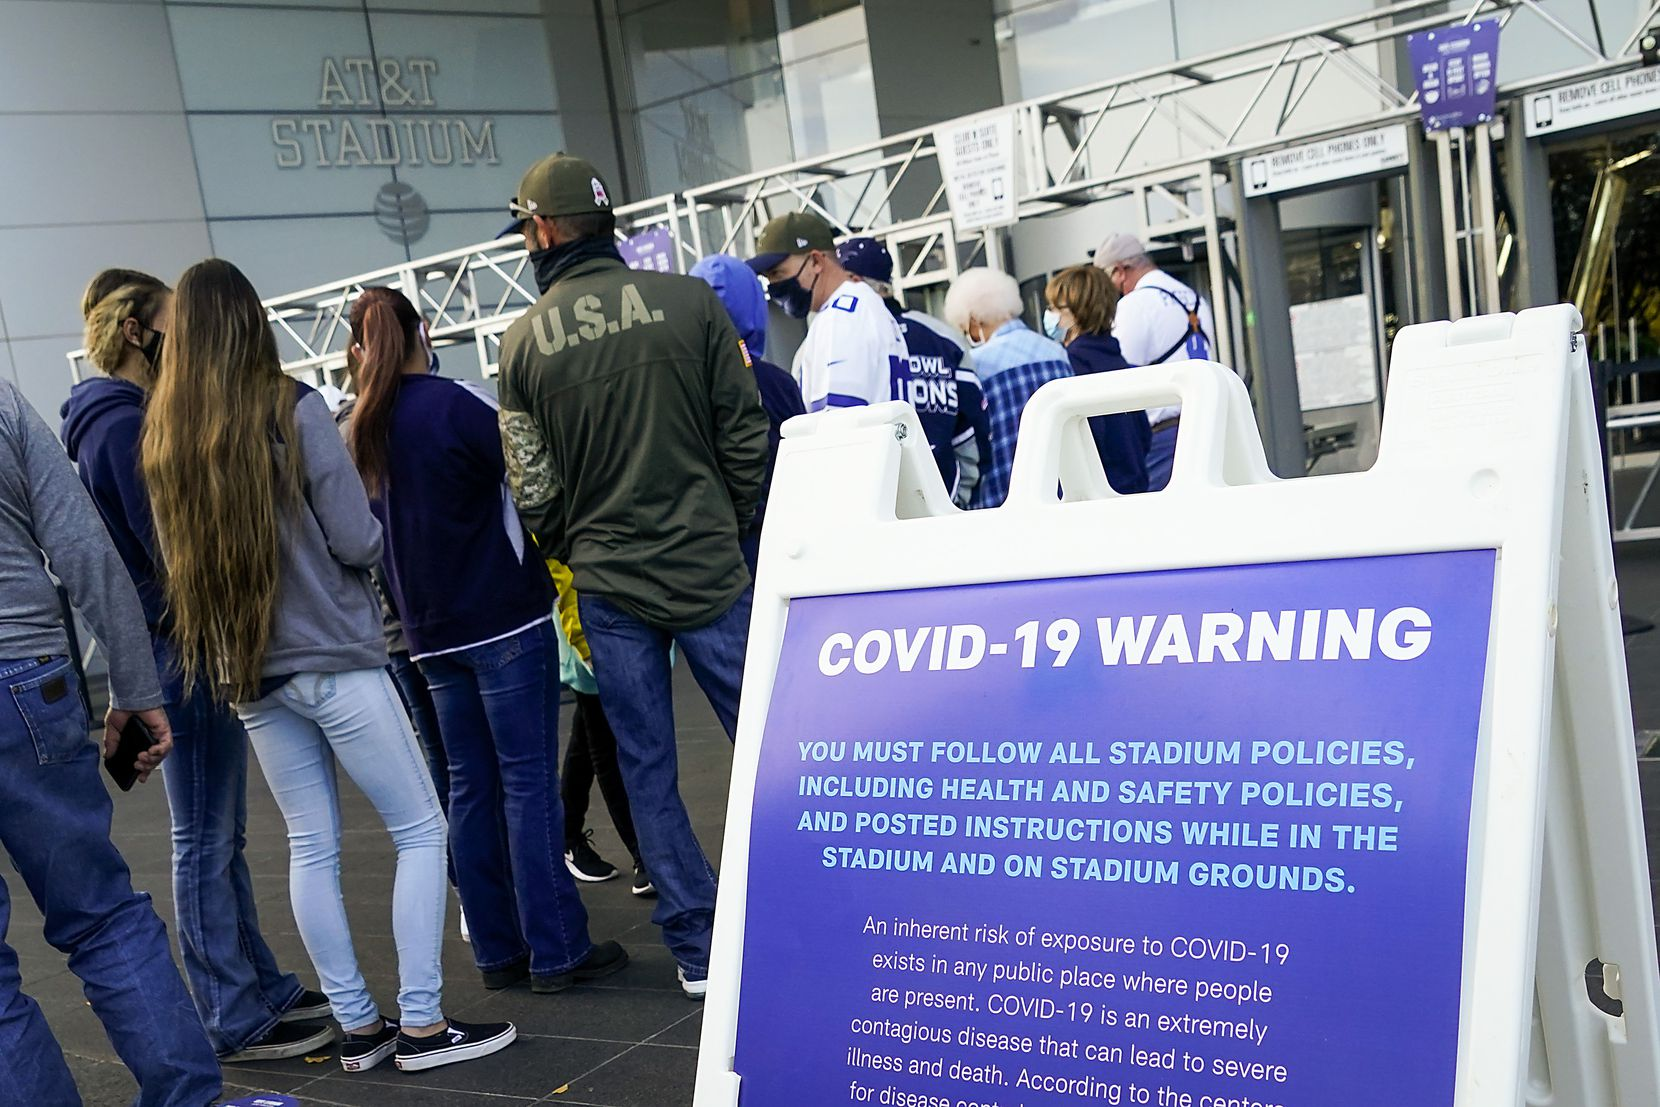 Fans wait for the gates to open before an NFL football game between the Dallas Cowboys and the Washington Football Team at AT&T Stadium on Thursday, Nov. 26, 2020, in Arlington. (Smiley N. Pool/The Dallas Morning News)